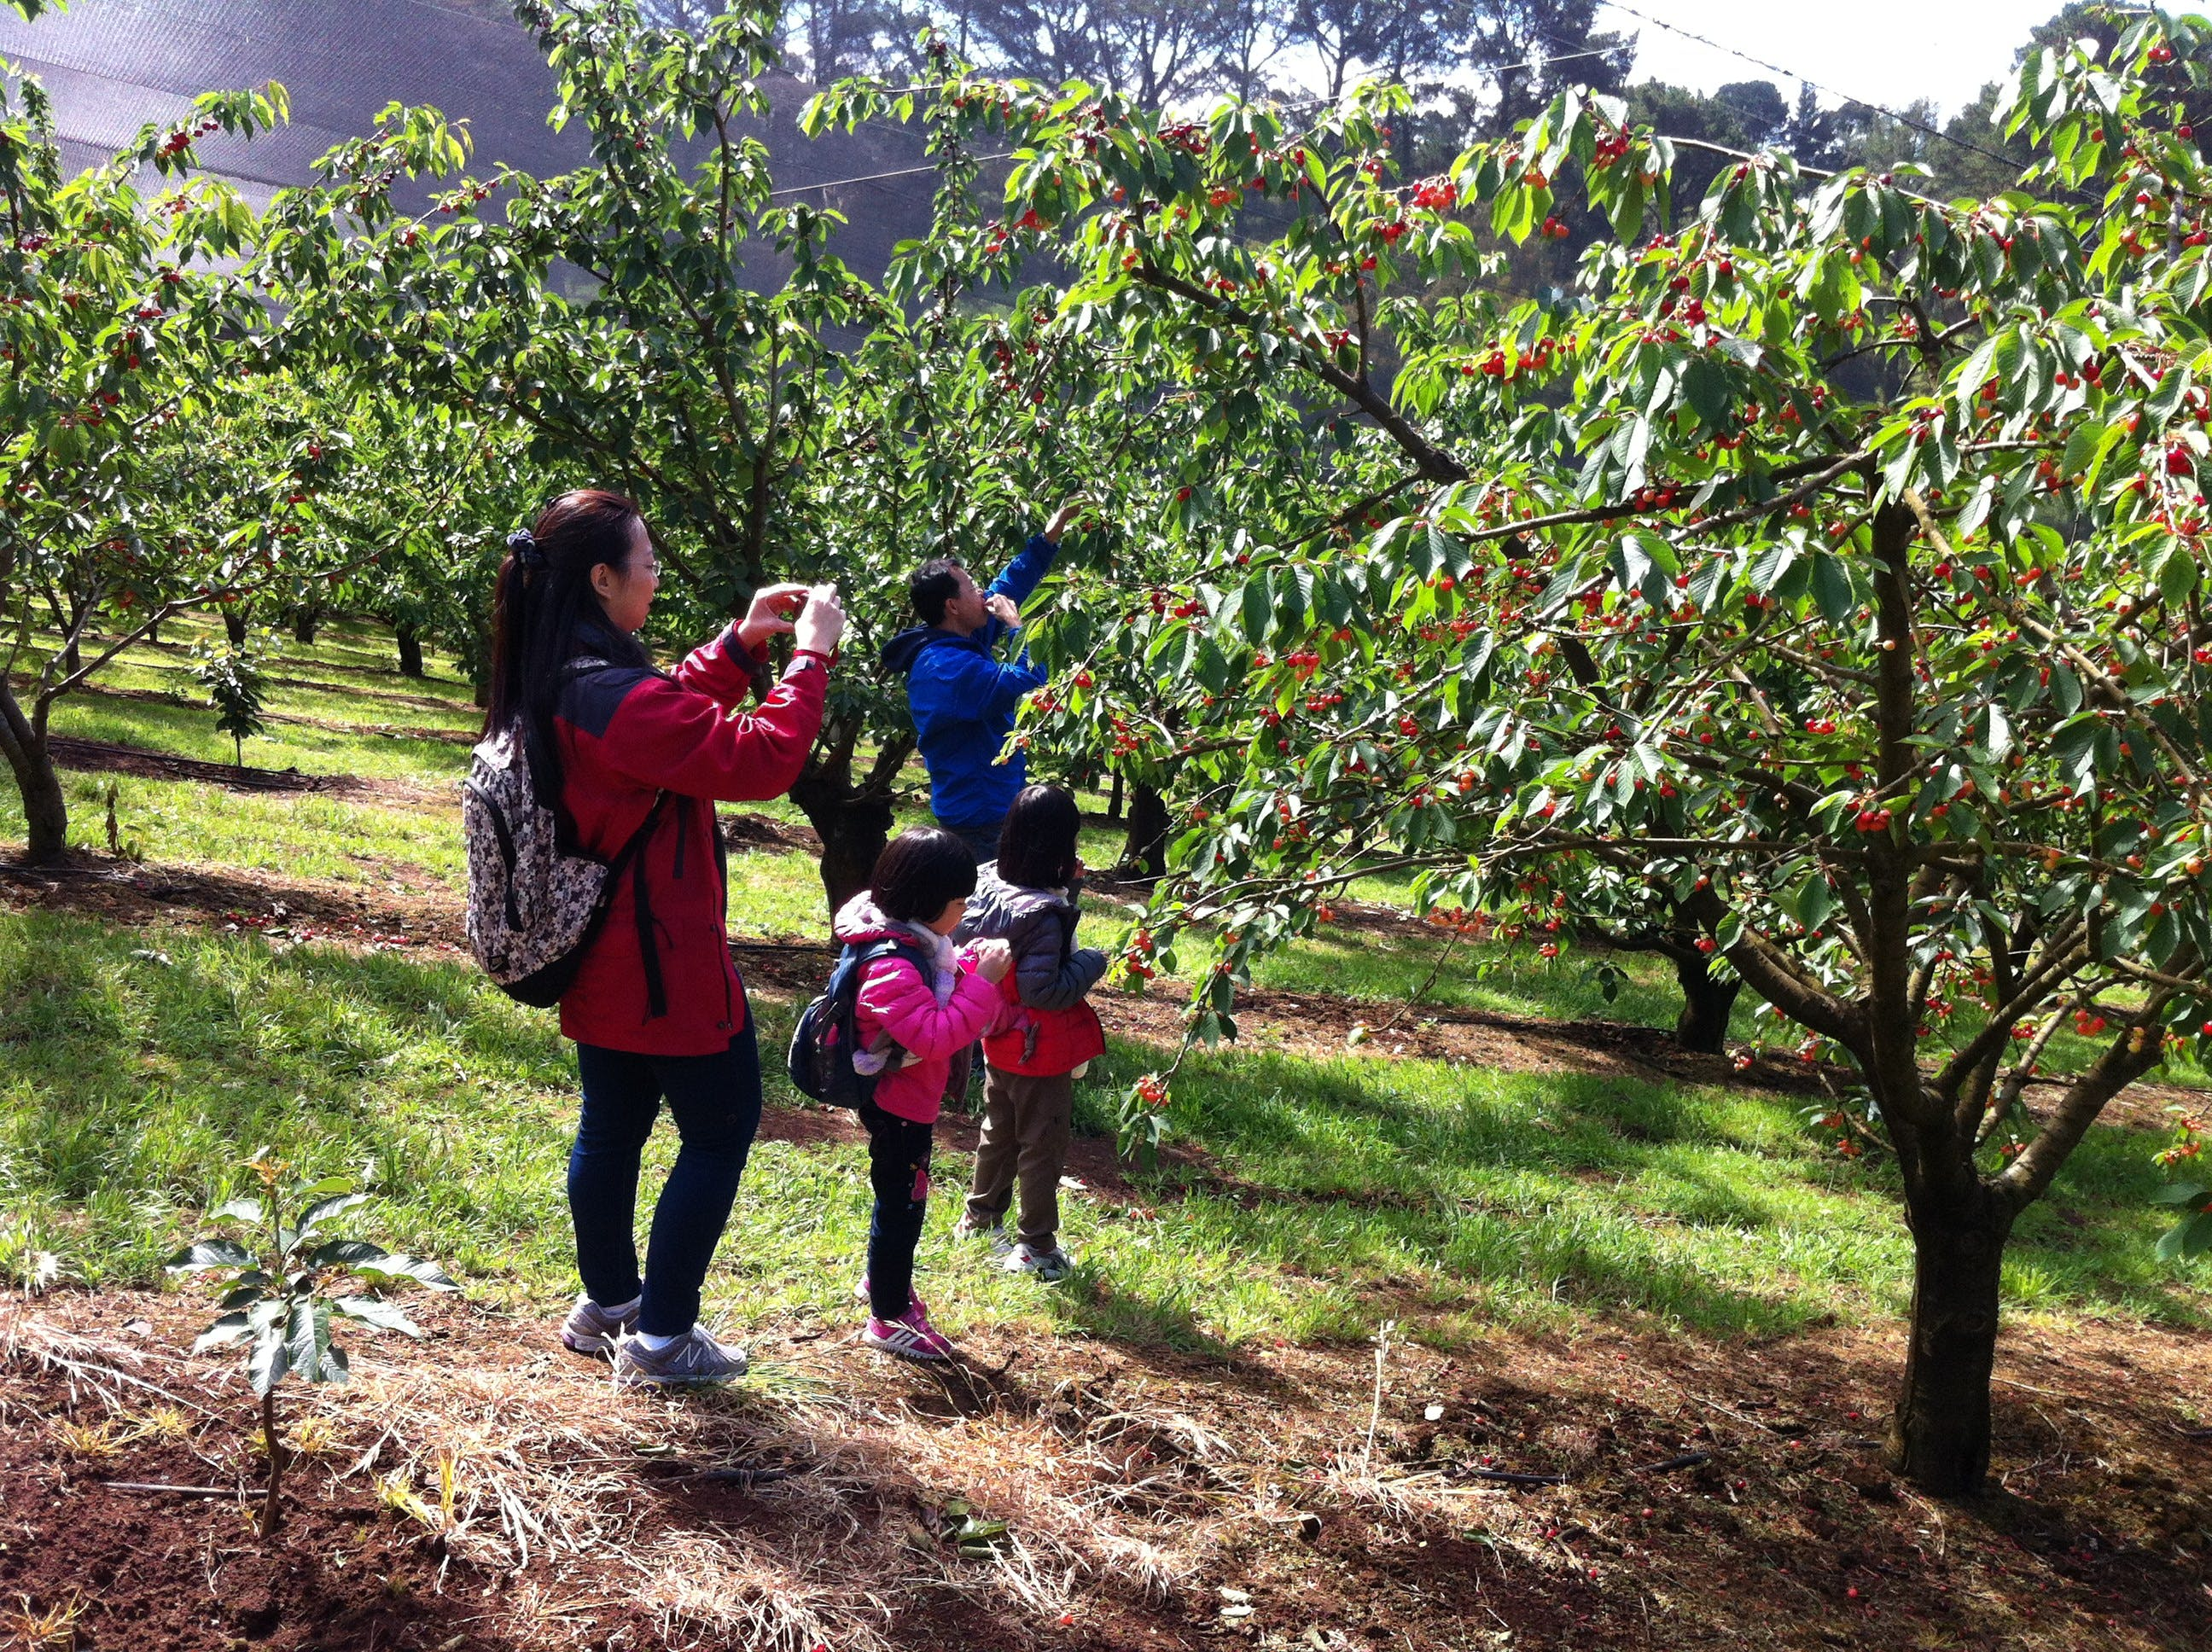 Short drive to cherry picking at Mainridge.